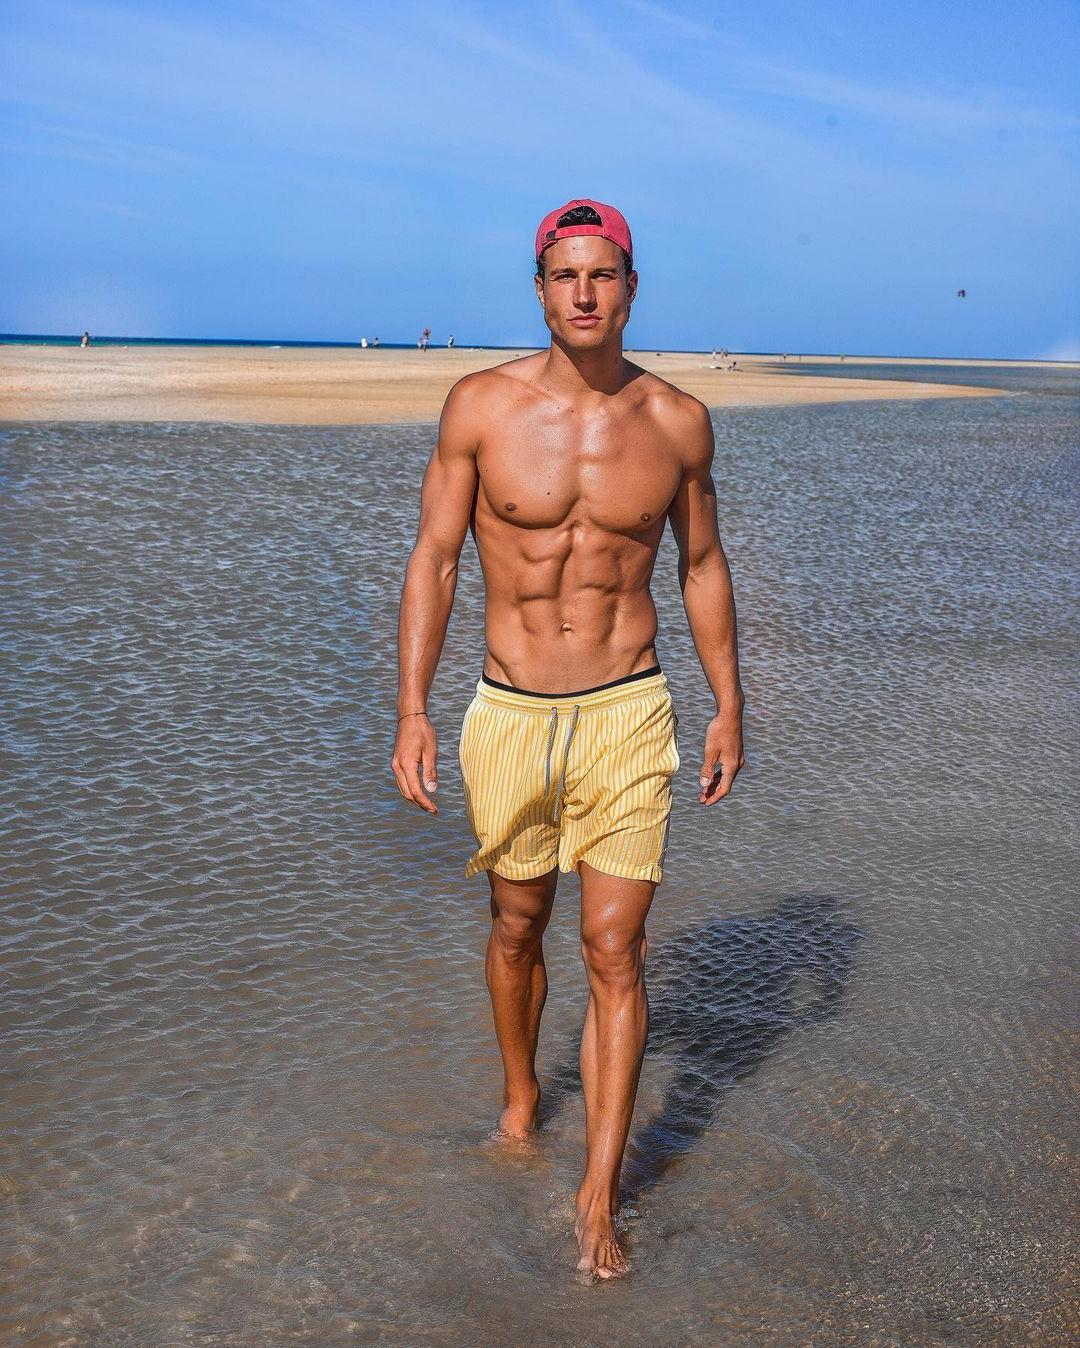 fit-shirtless-male-model-torben-konig-abs-beach-day-hunk